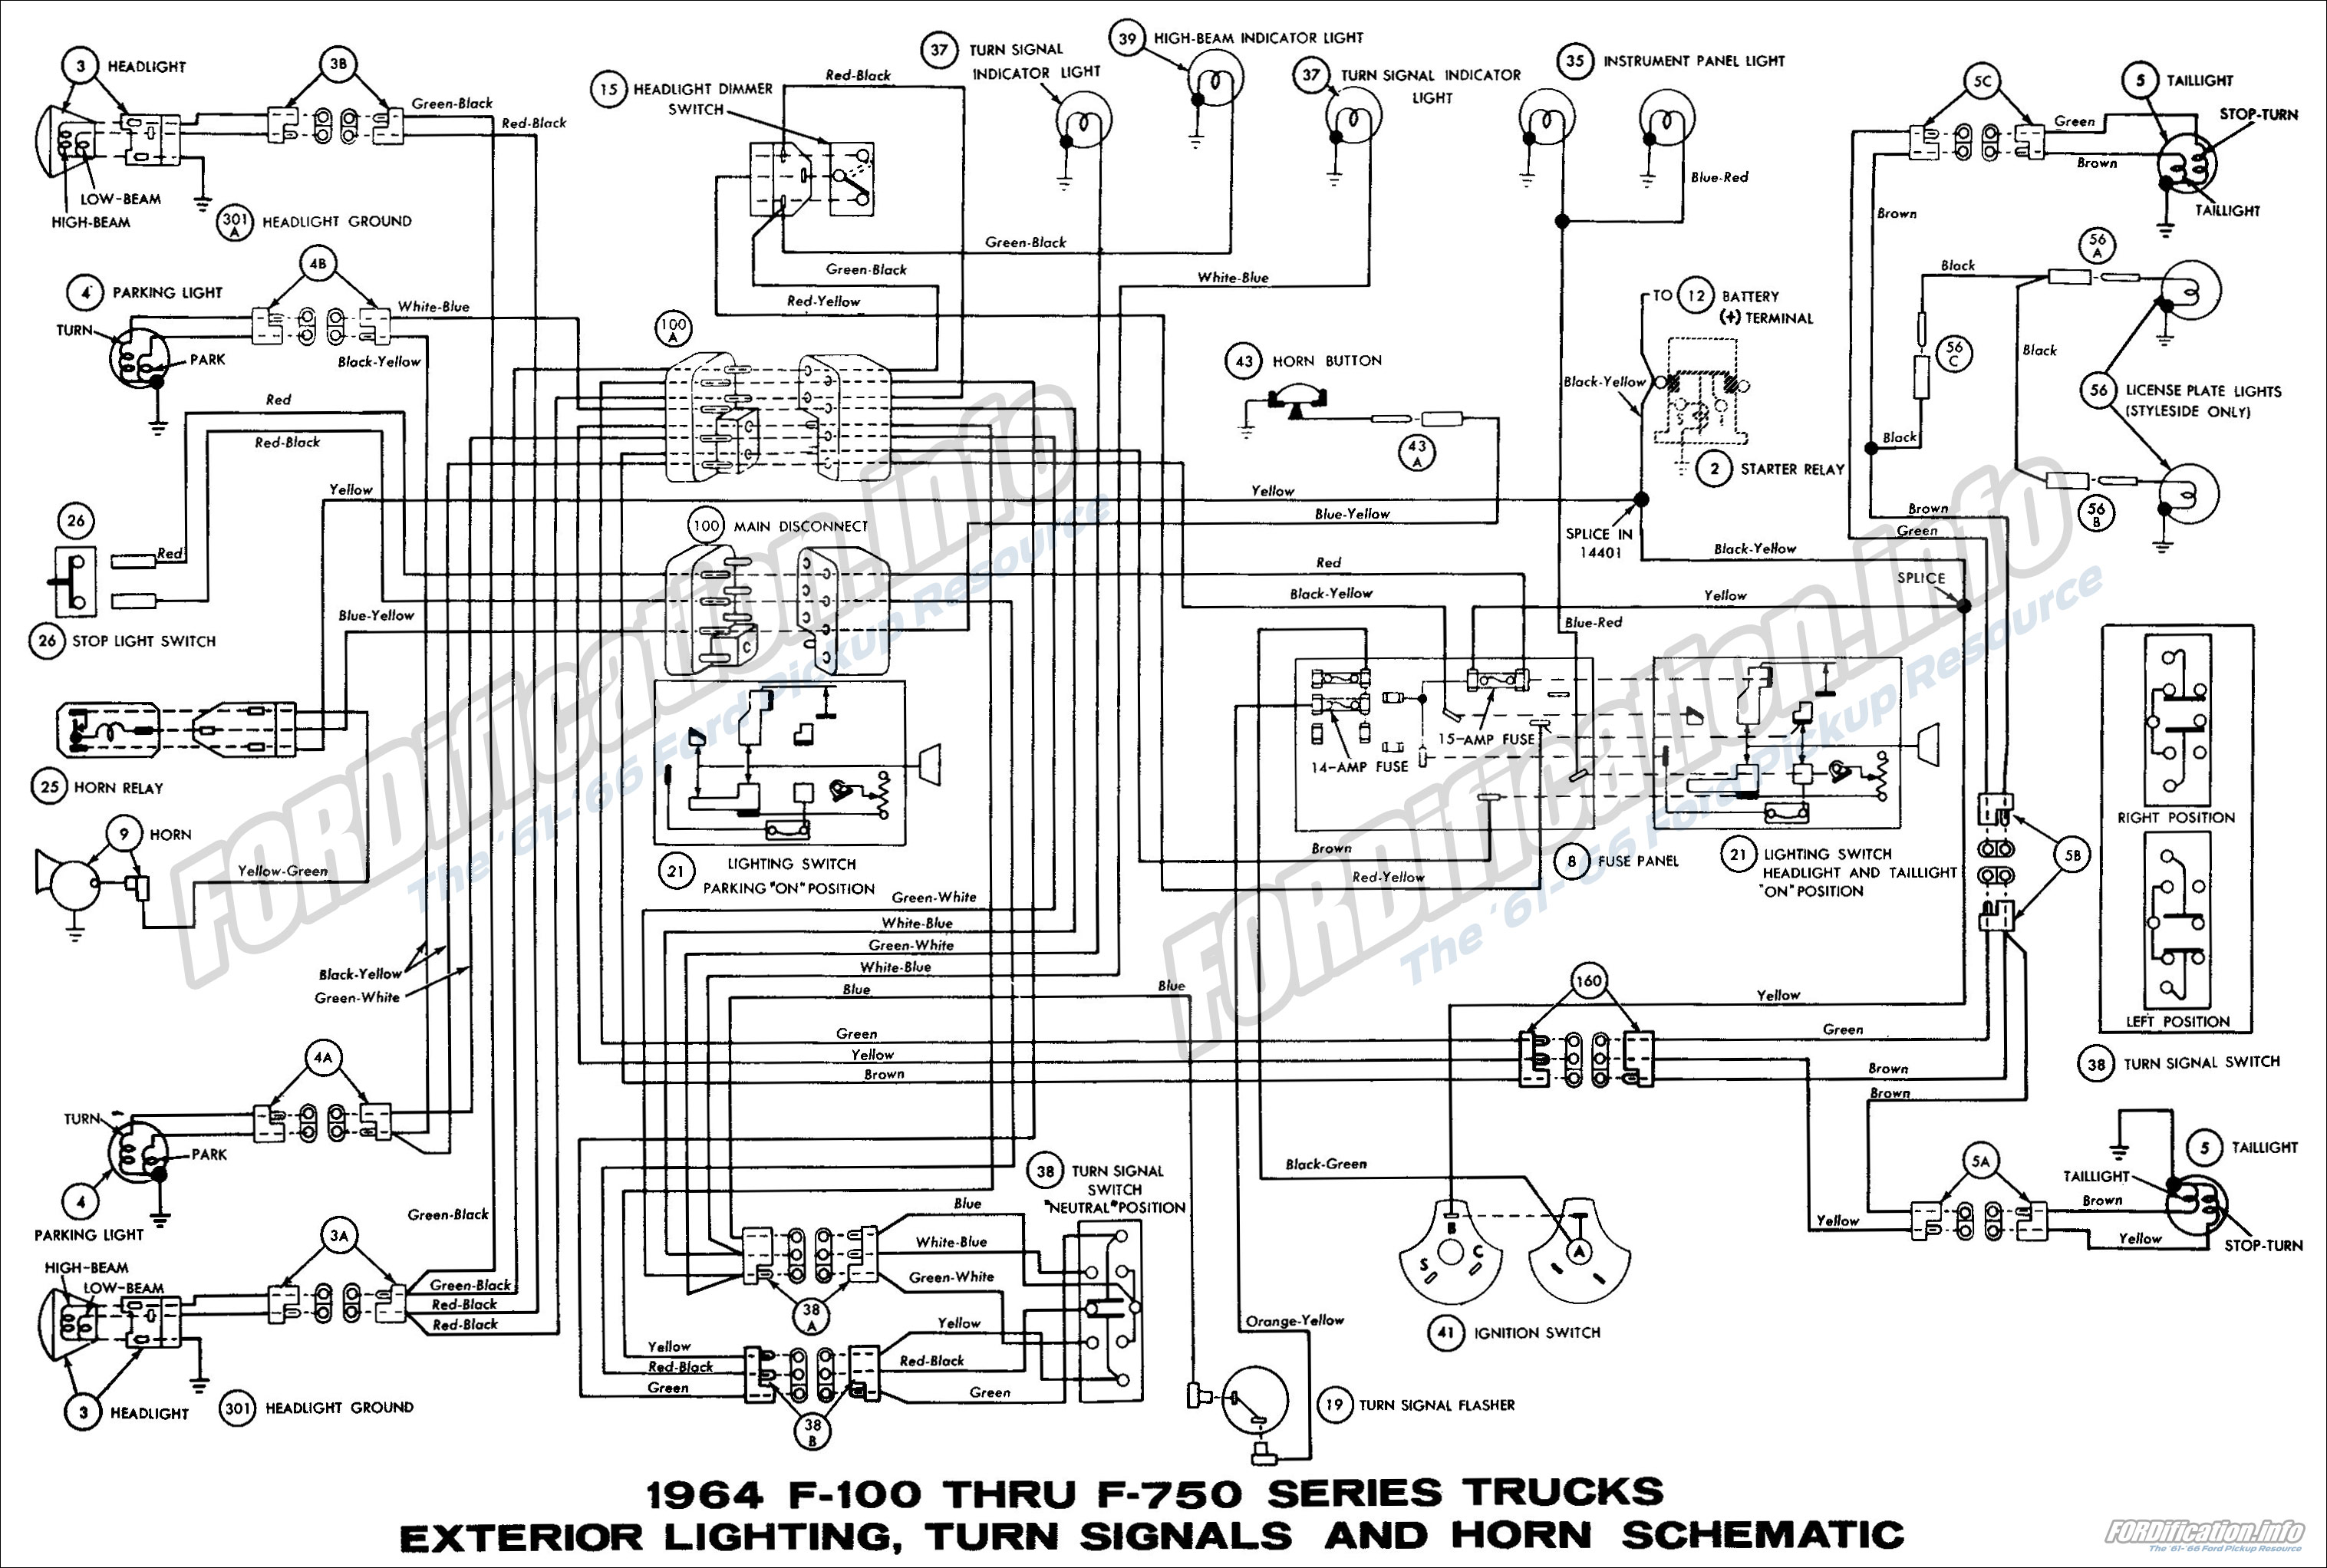 1964 ford truck wiring diagrams fordification info the 61 66 rh fordification info 1965 ford truck wiring harness Ford Electrical Wiring Diagrams